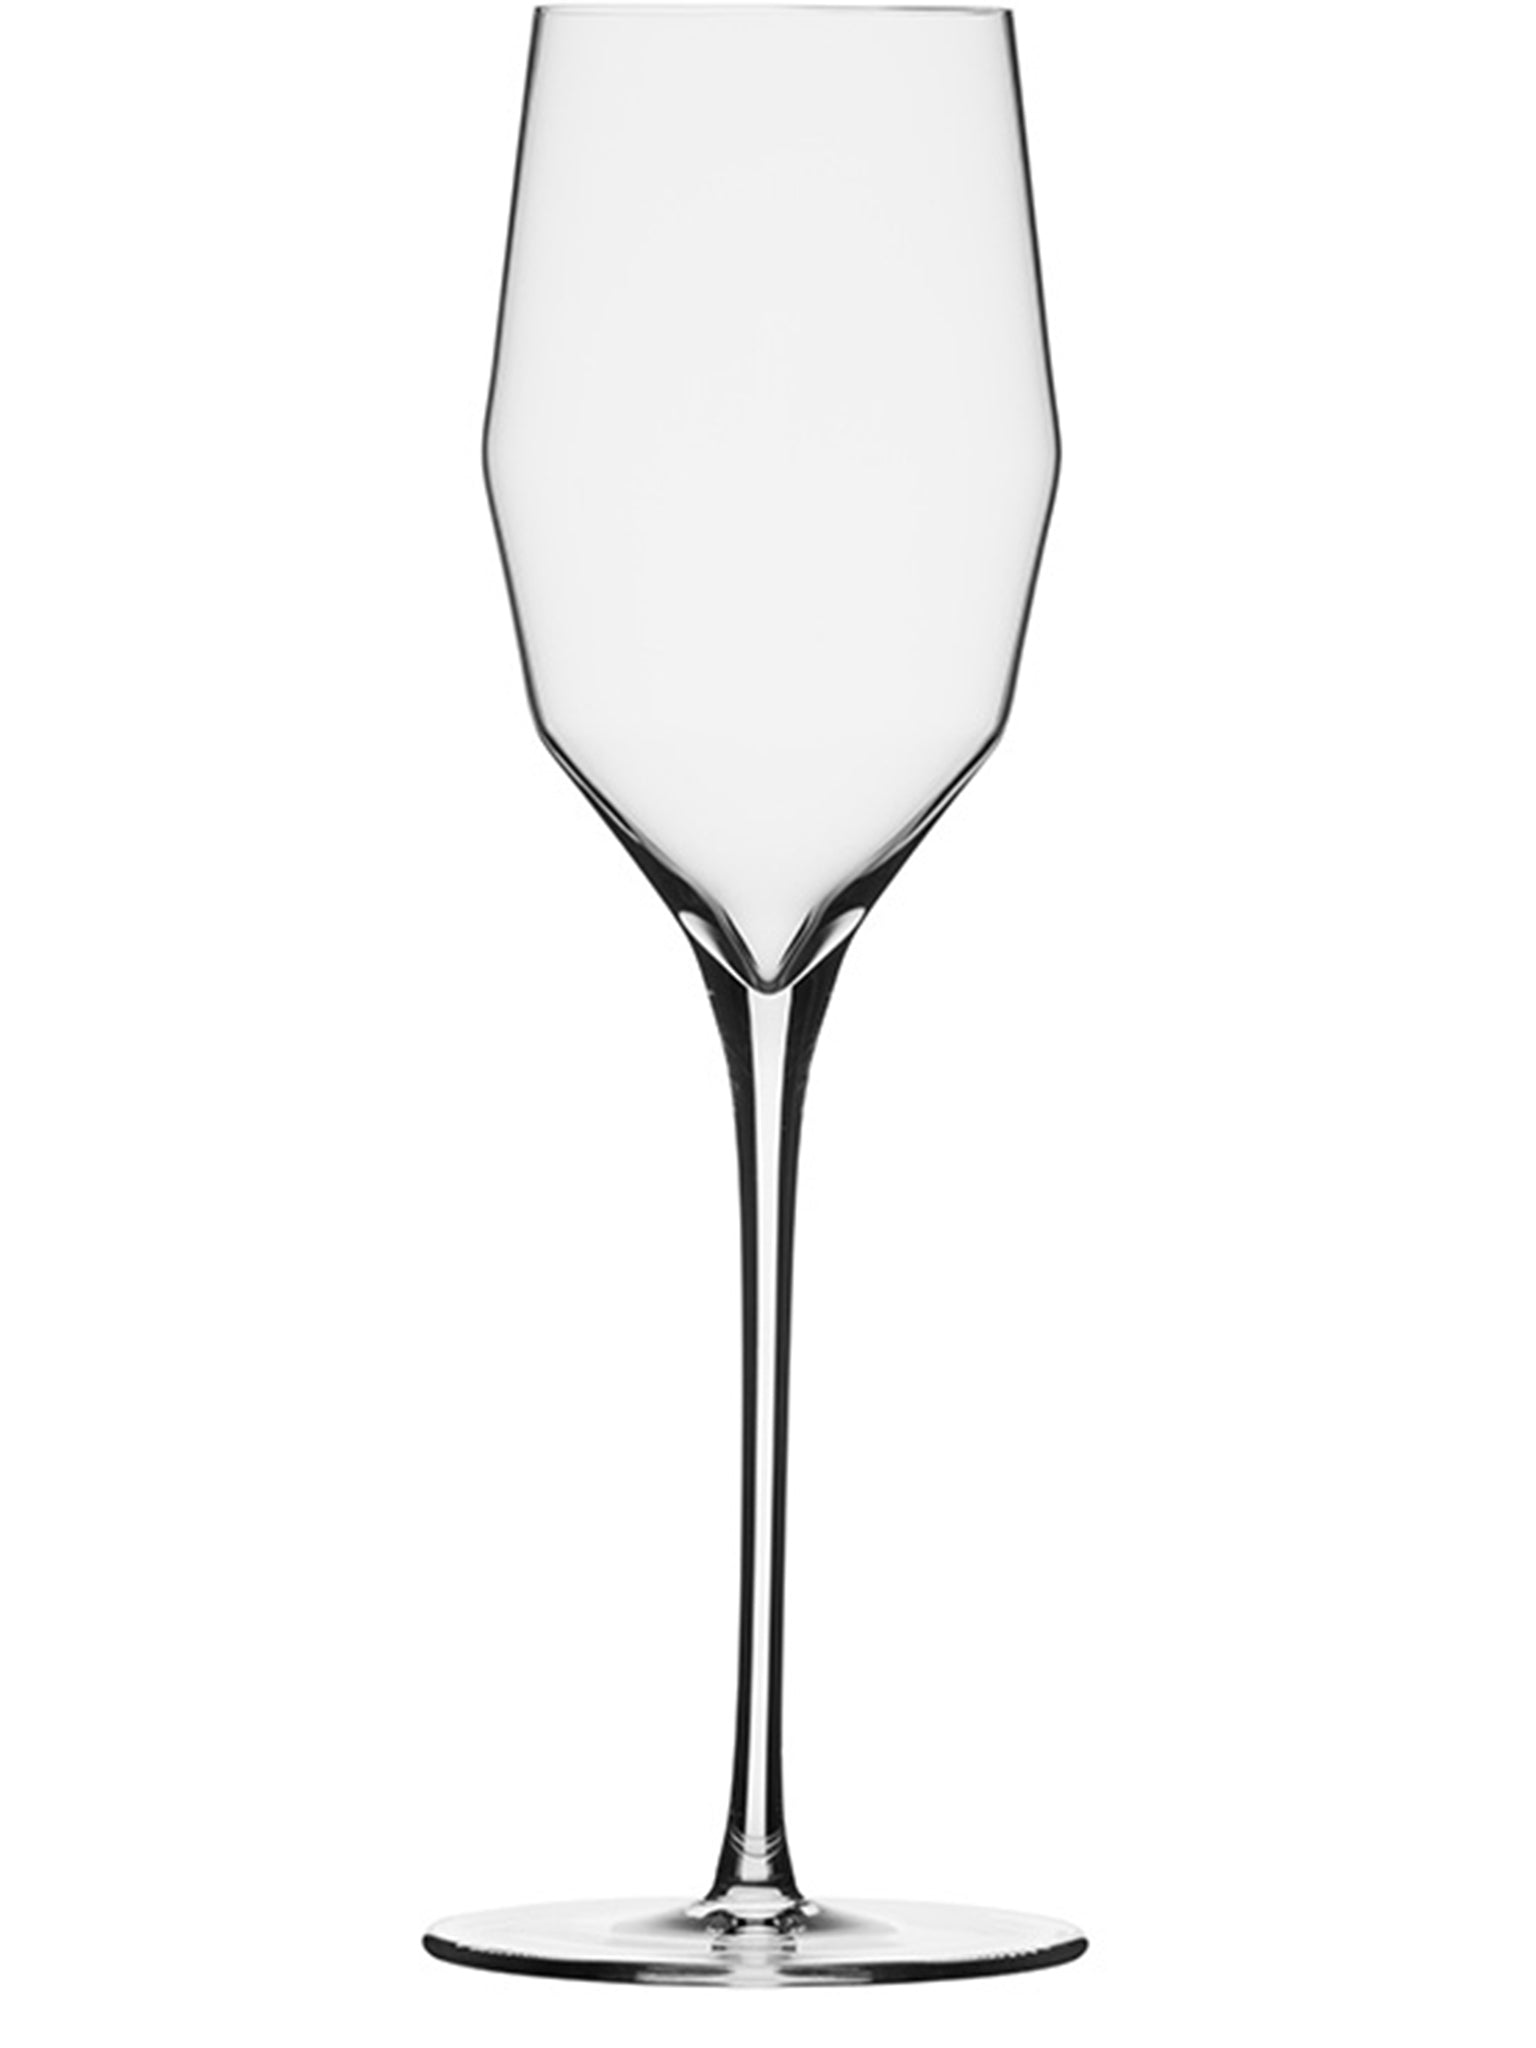 MarkThomas Double Bend Champagne glass 6pk